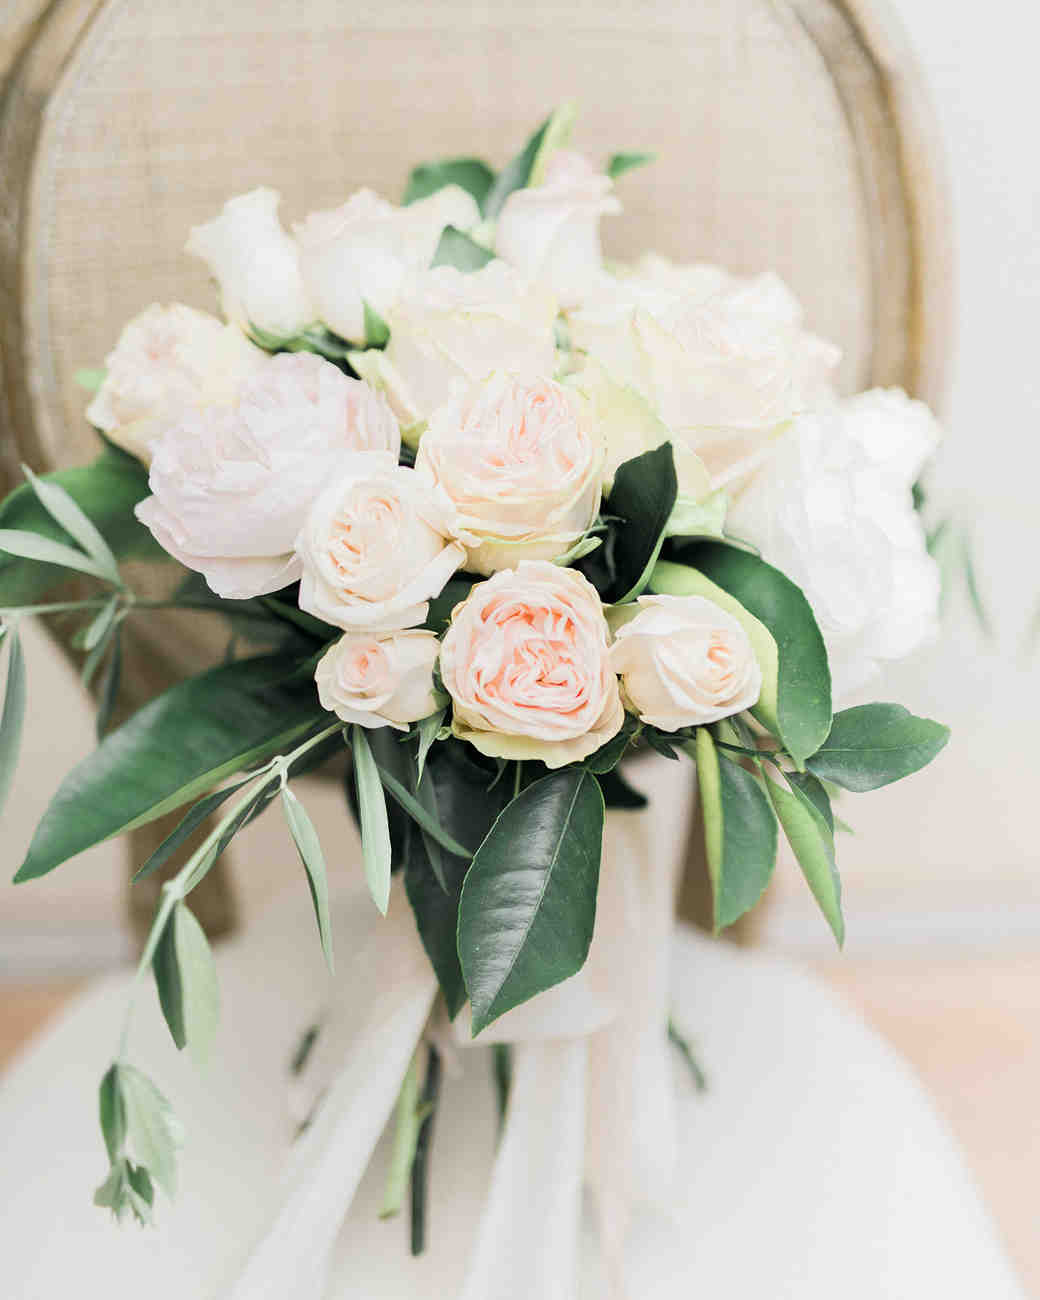 Soft pink rose wedding bouquet